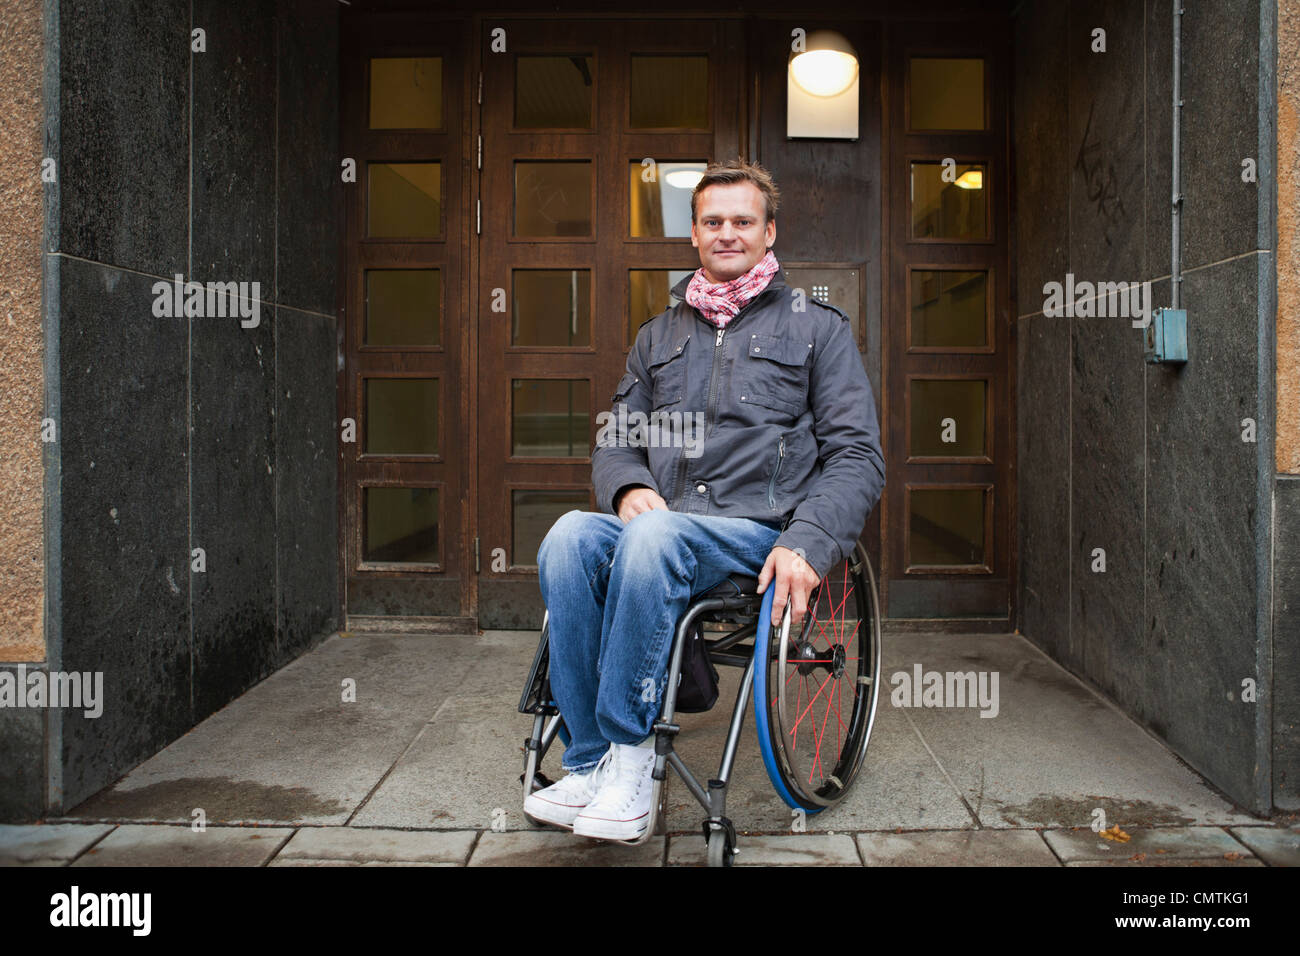 Man sitting in wheelchair looking at camera - Stock Image